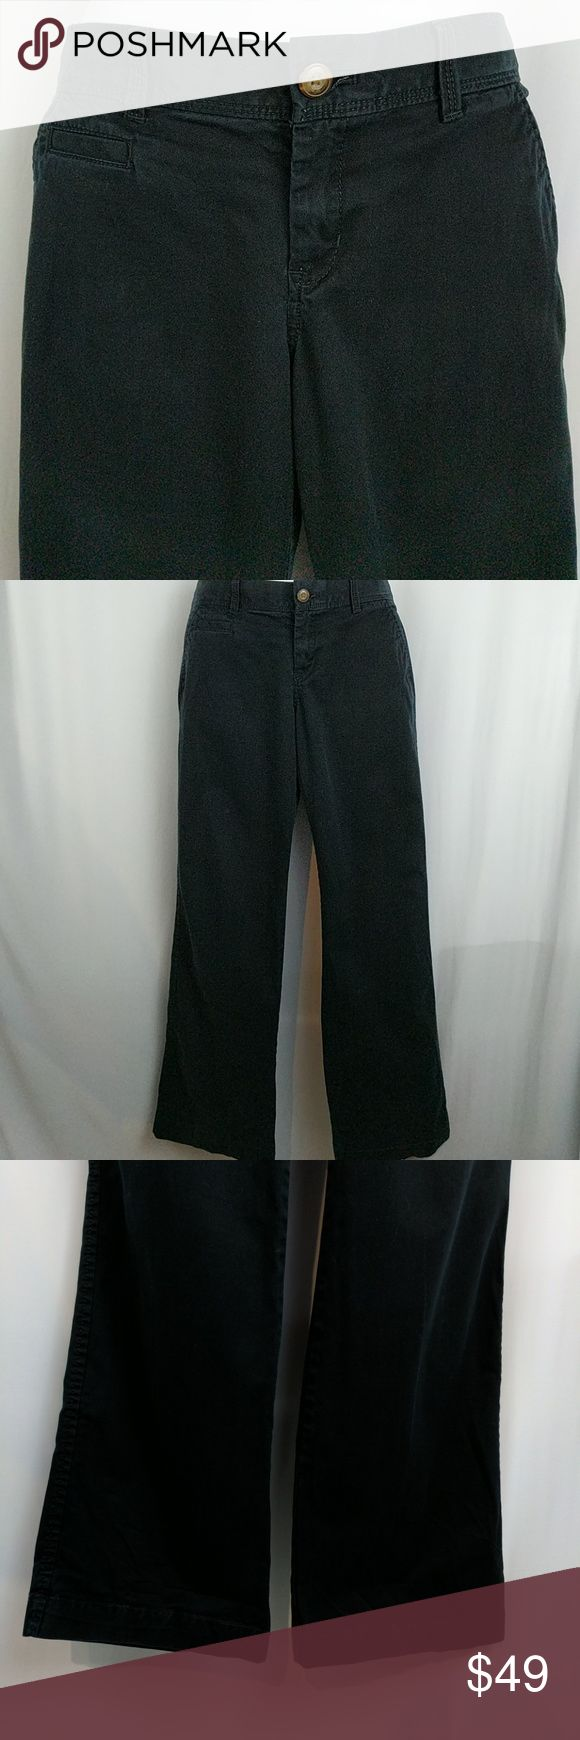 "Old Navy Perfect Boot-Cut Black Khakis Sz 6 Short Old Navy Perfect Boot-Cut Black Khakis Sz 6 Short. Excellent condition. Waist measures 32"" around. Hips 36"" around. Rise 8"". Inseam 28"". 97% cotton. 2% spandex. Smoke free. RT1 Old Navy Pants"